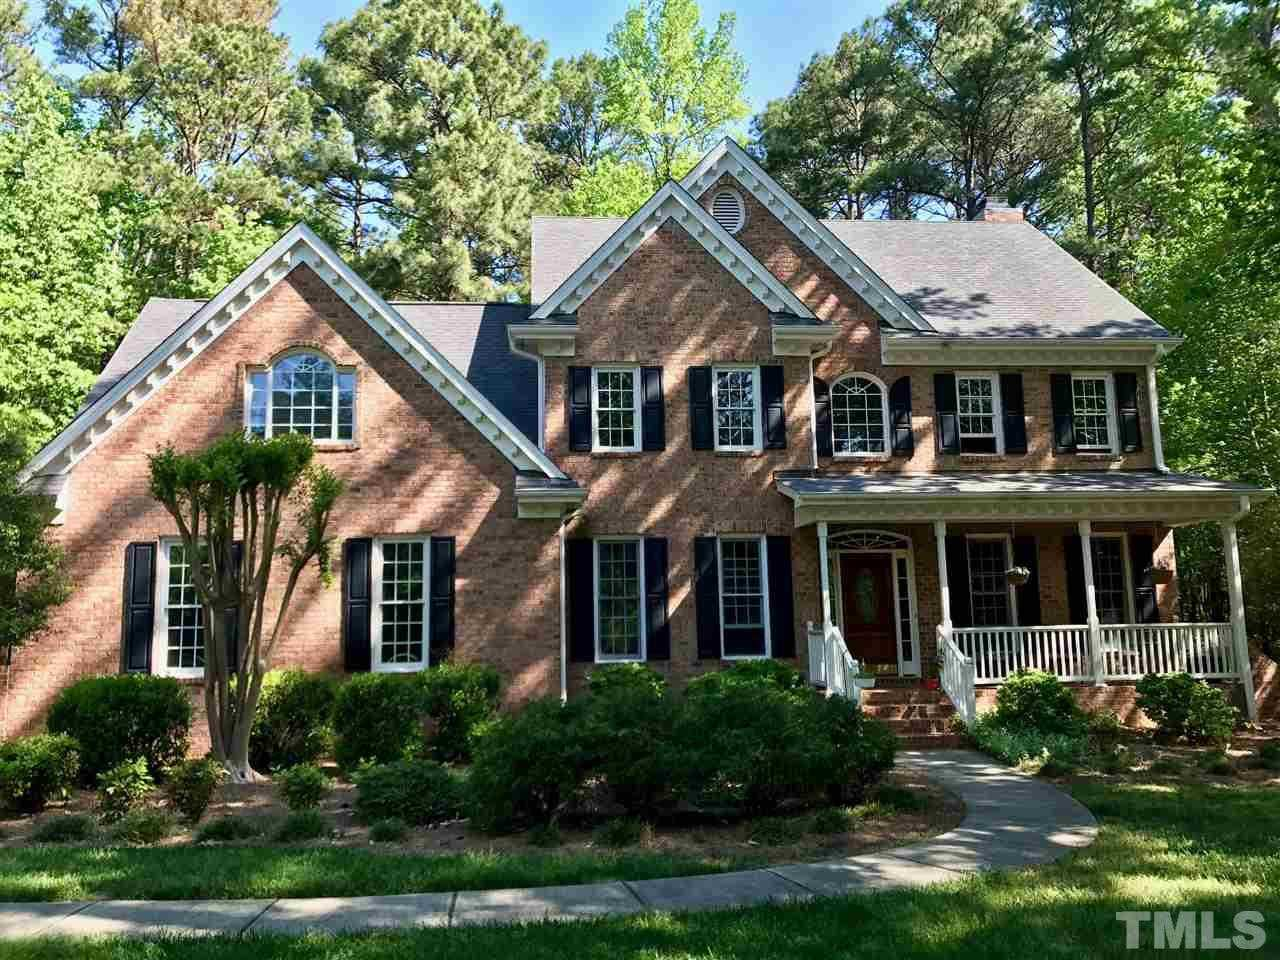 $3,200 - 4Br/3Ba -  for Sale in Cross Gate, Raleigh